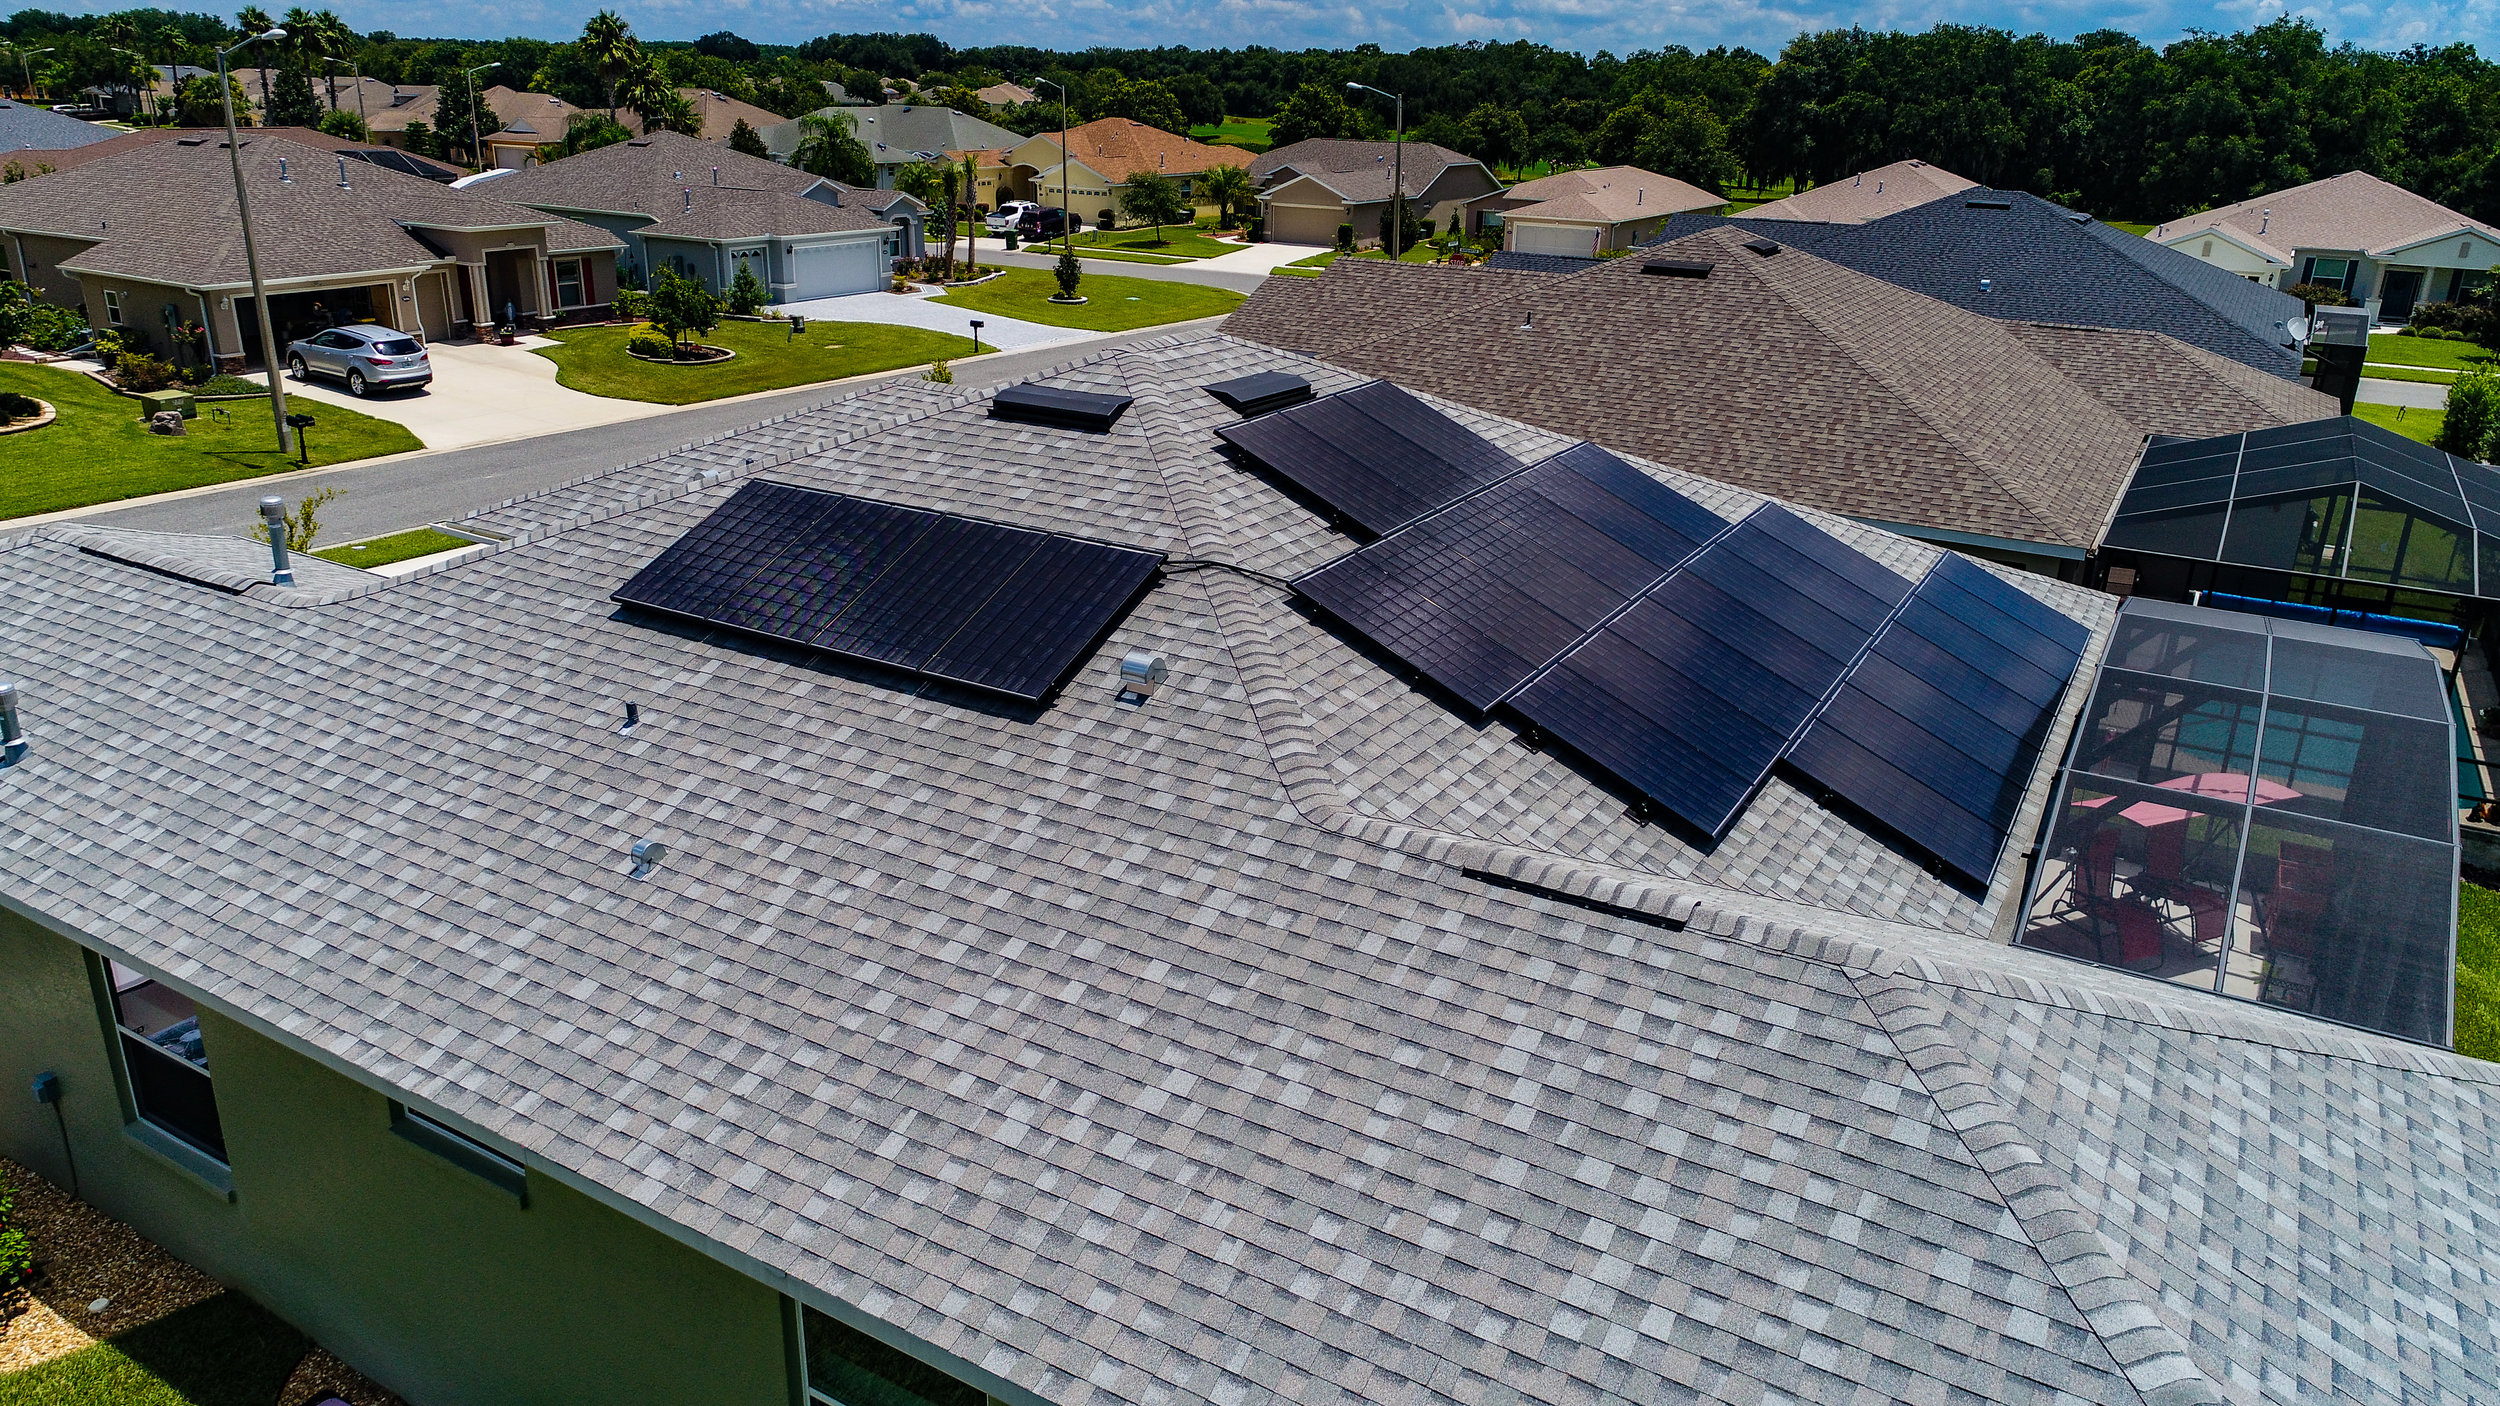 View of rooftop solar PV system